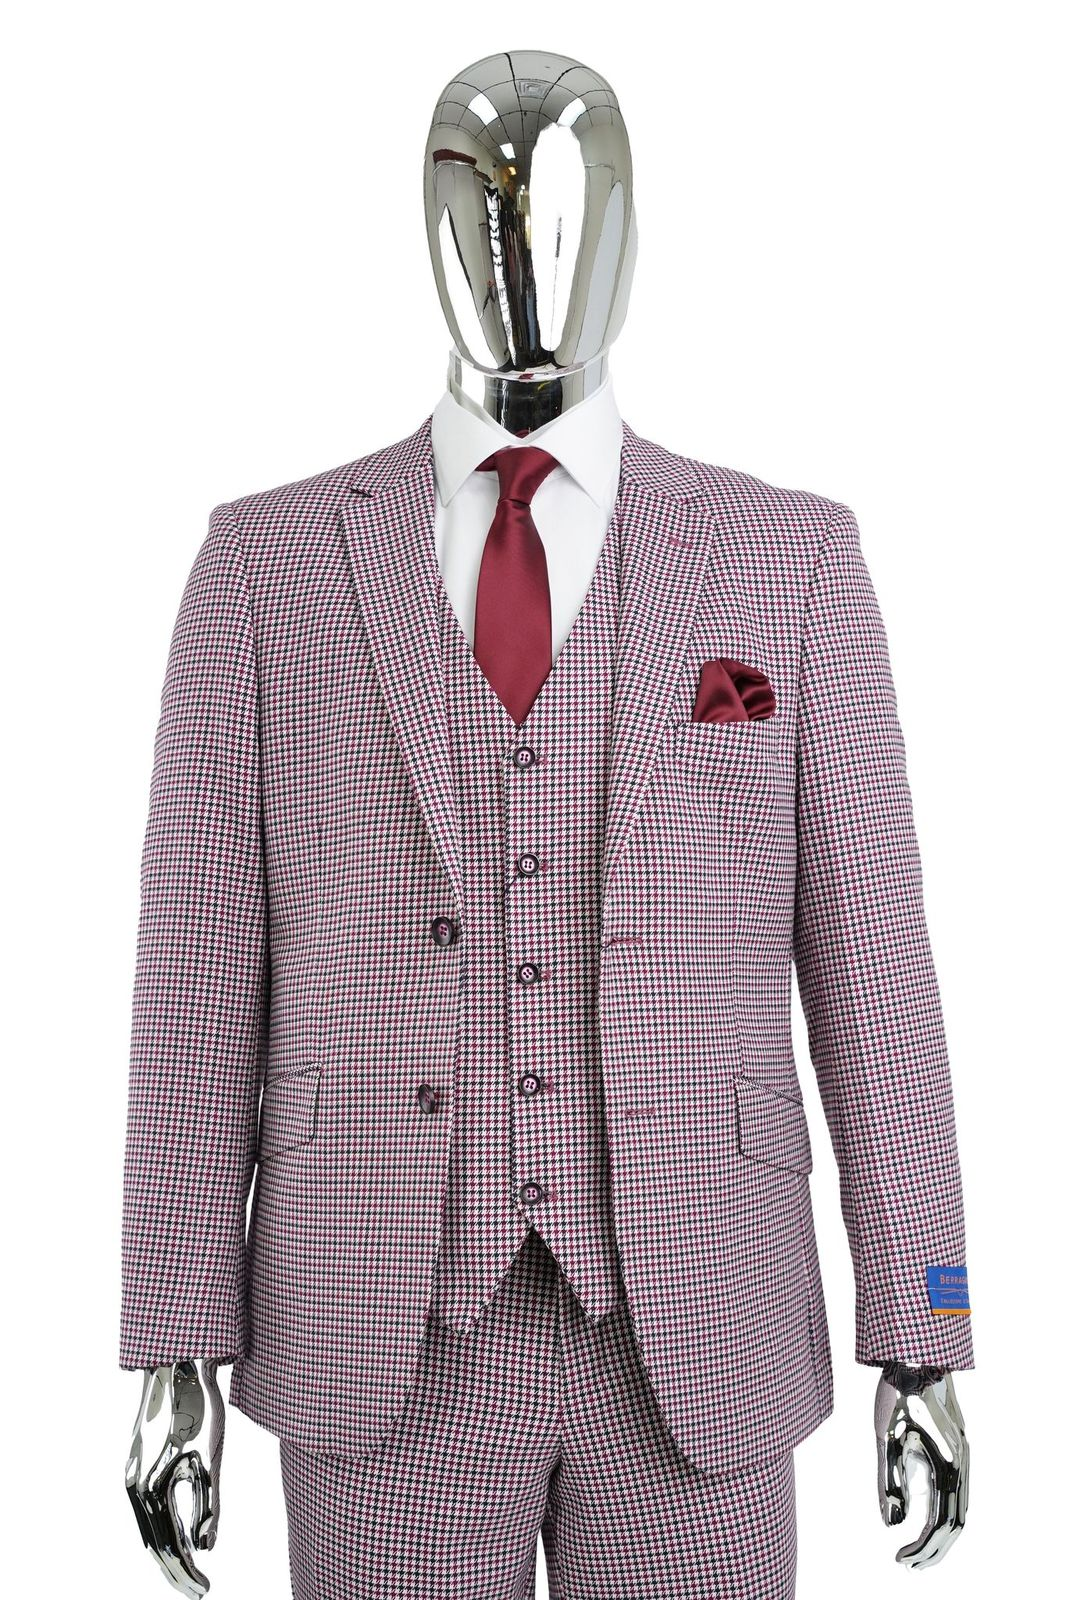 Q2549 SLIM FIT SUIT